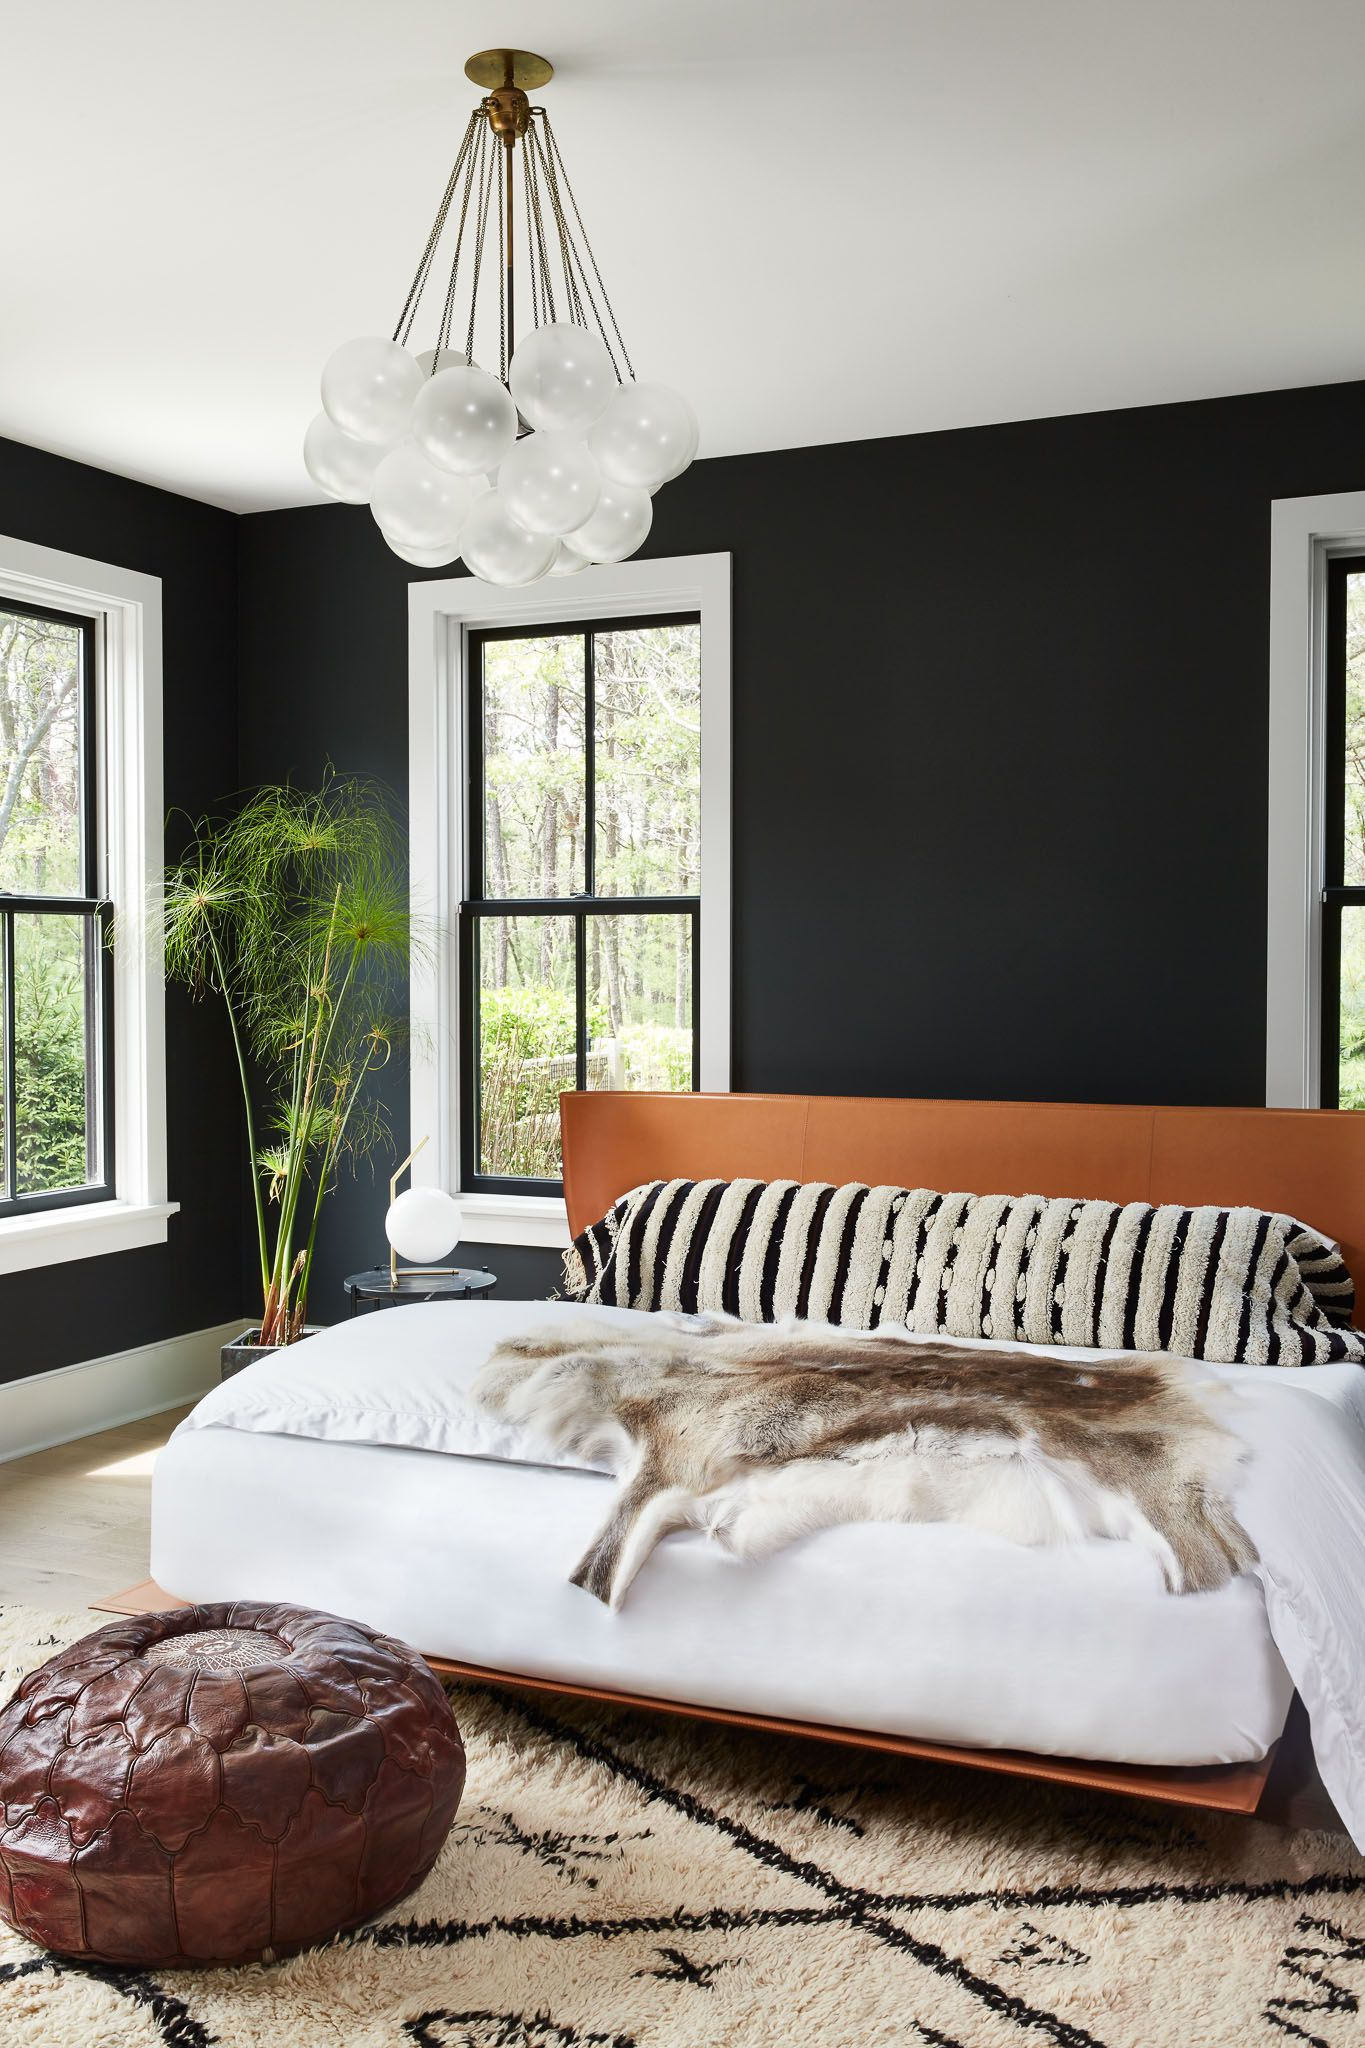 bedroom, wooden floor, balck wall, windows, smooth wooden bed platform, patterned rug, brown leather ottoman